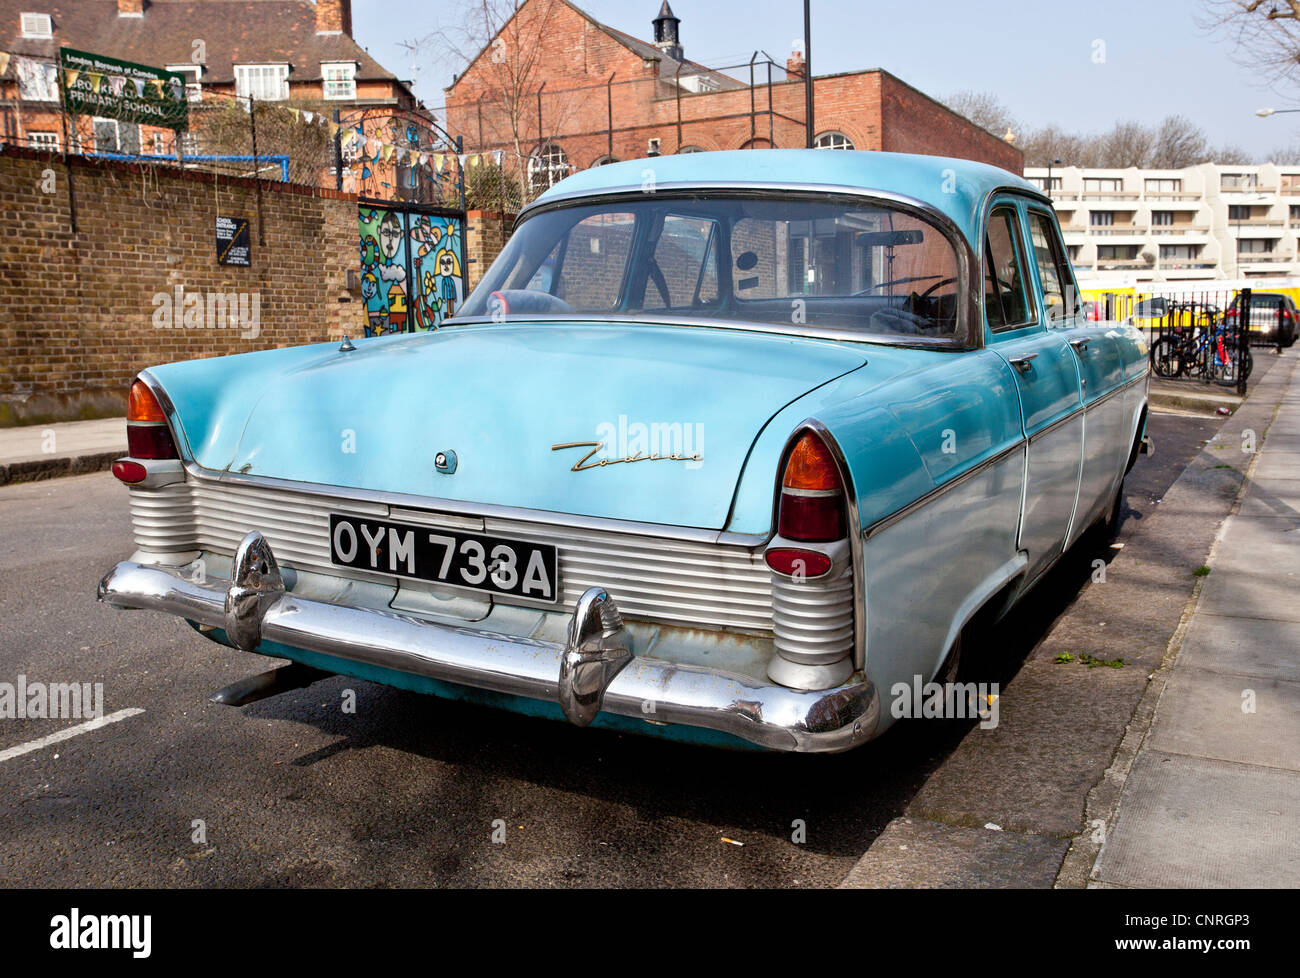 Rear View Of A Ford Zephyr Zodiac Car Parked On The Street London